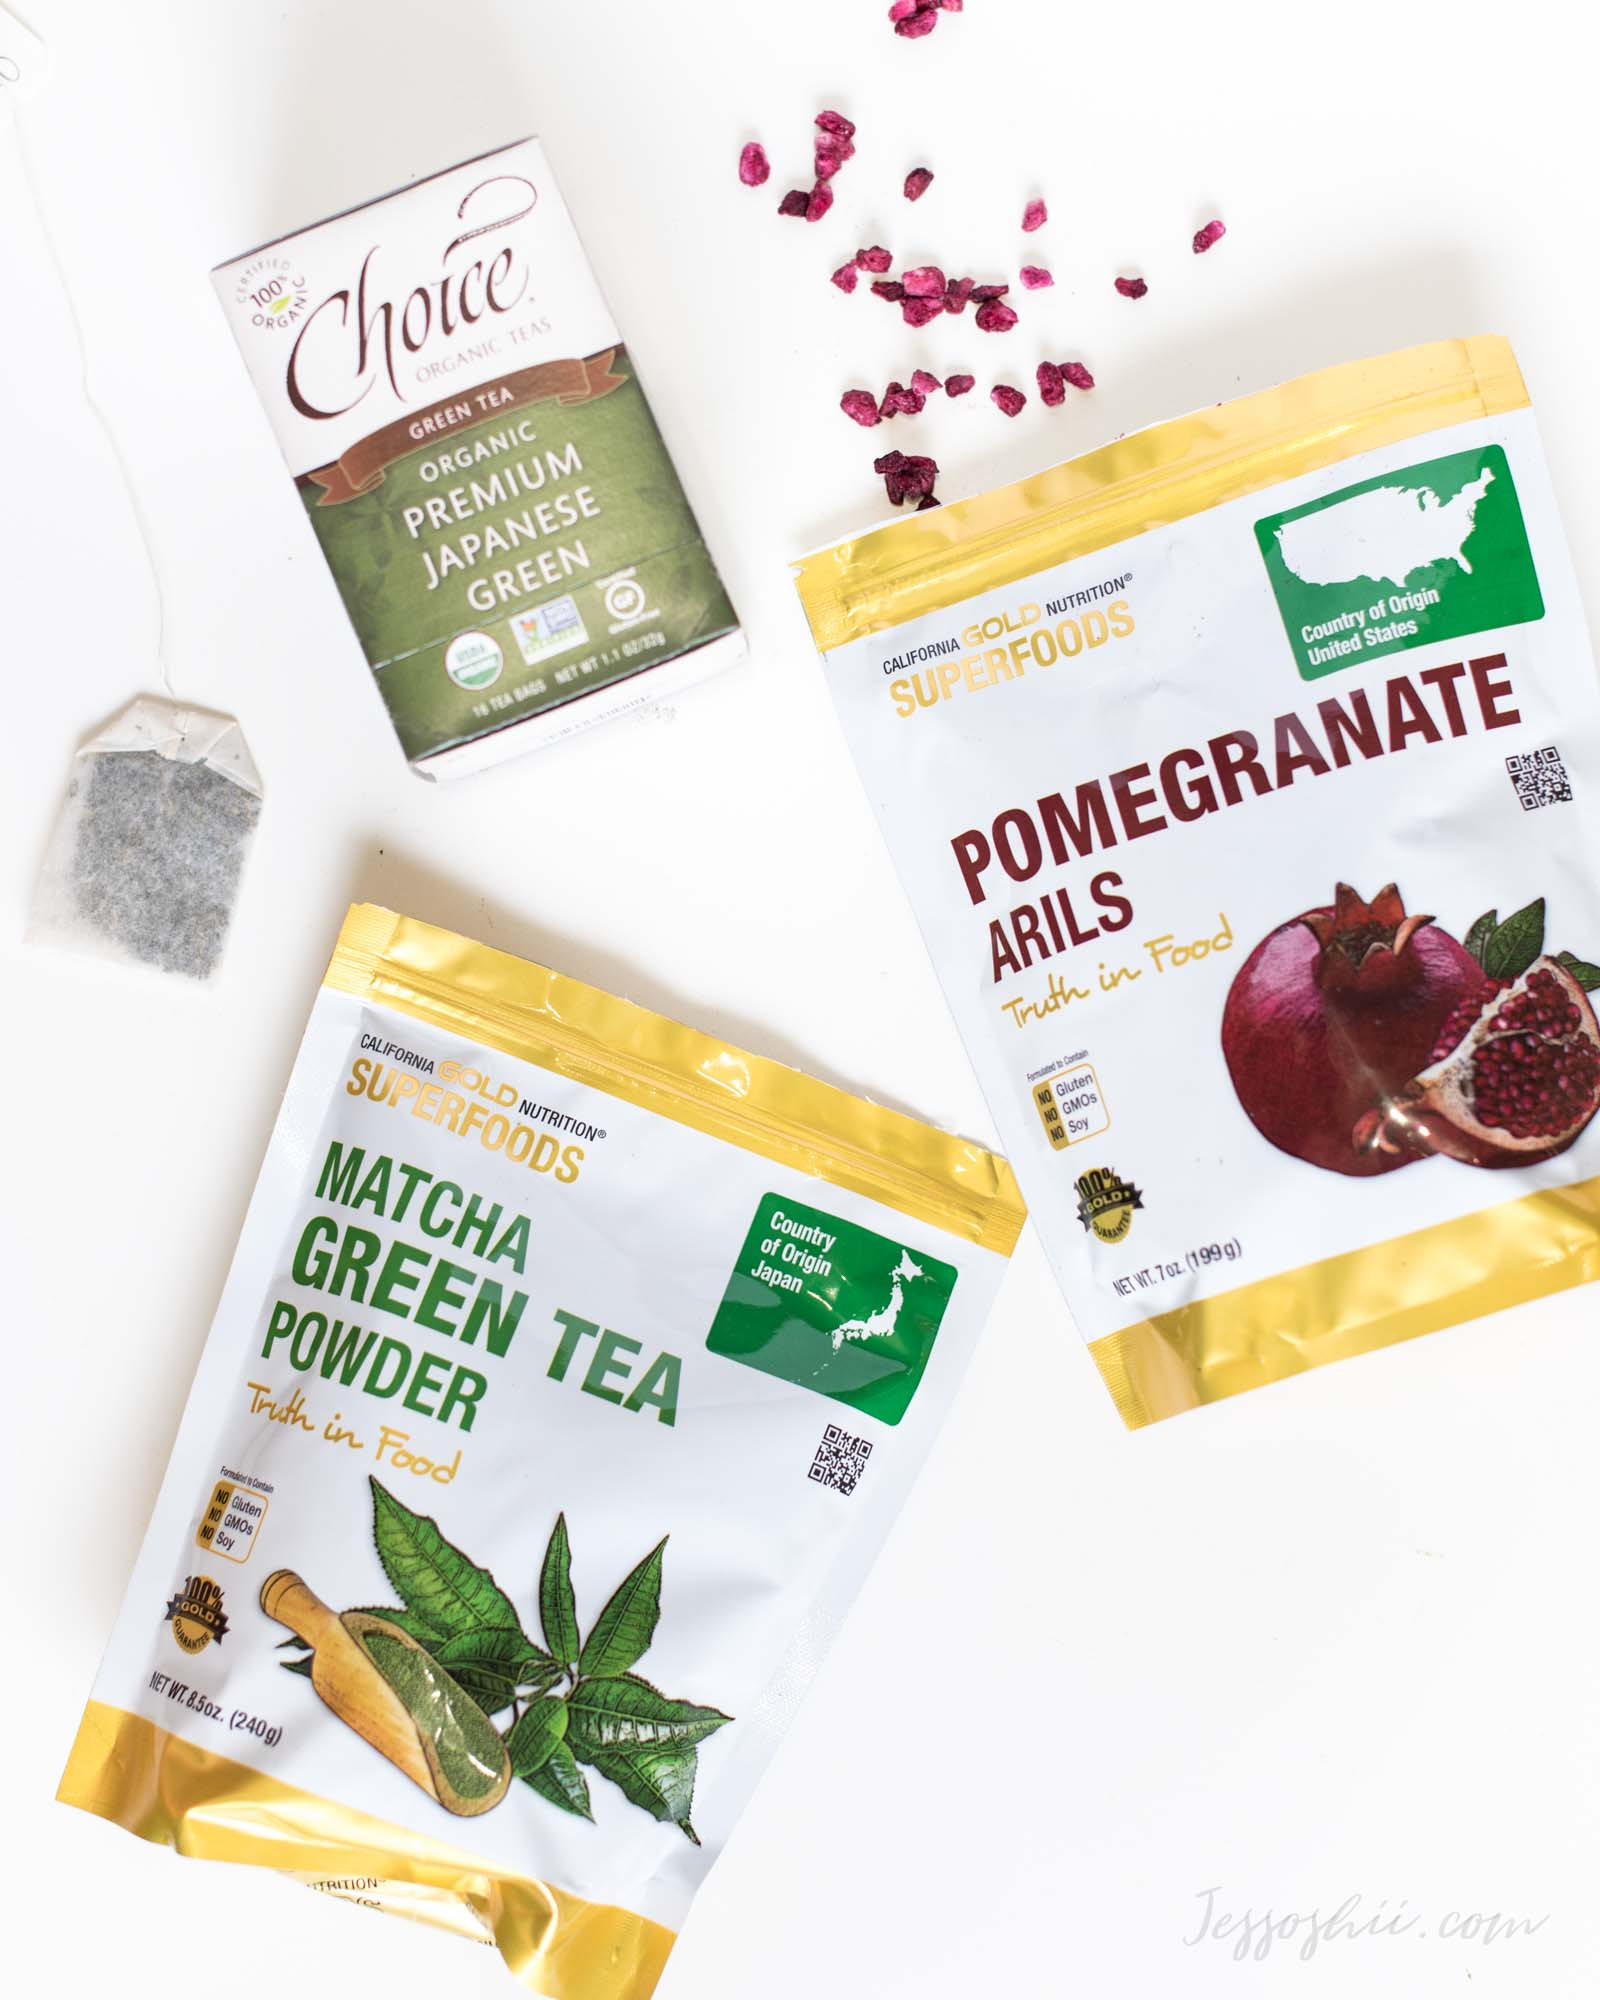 California Gold Nutrition Superfood ingredients for DIY face masks 8